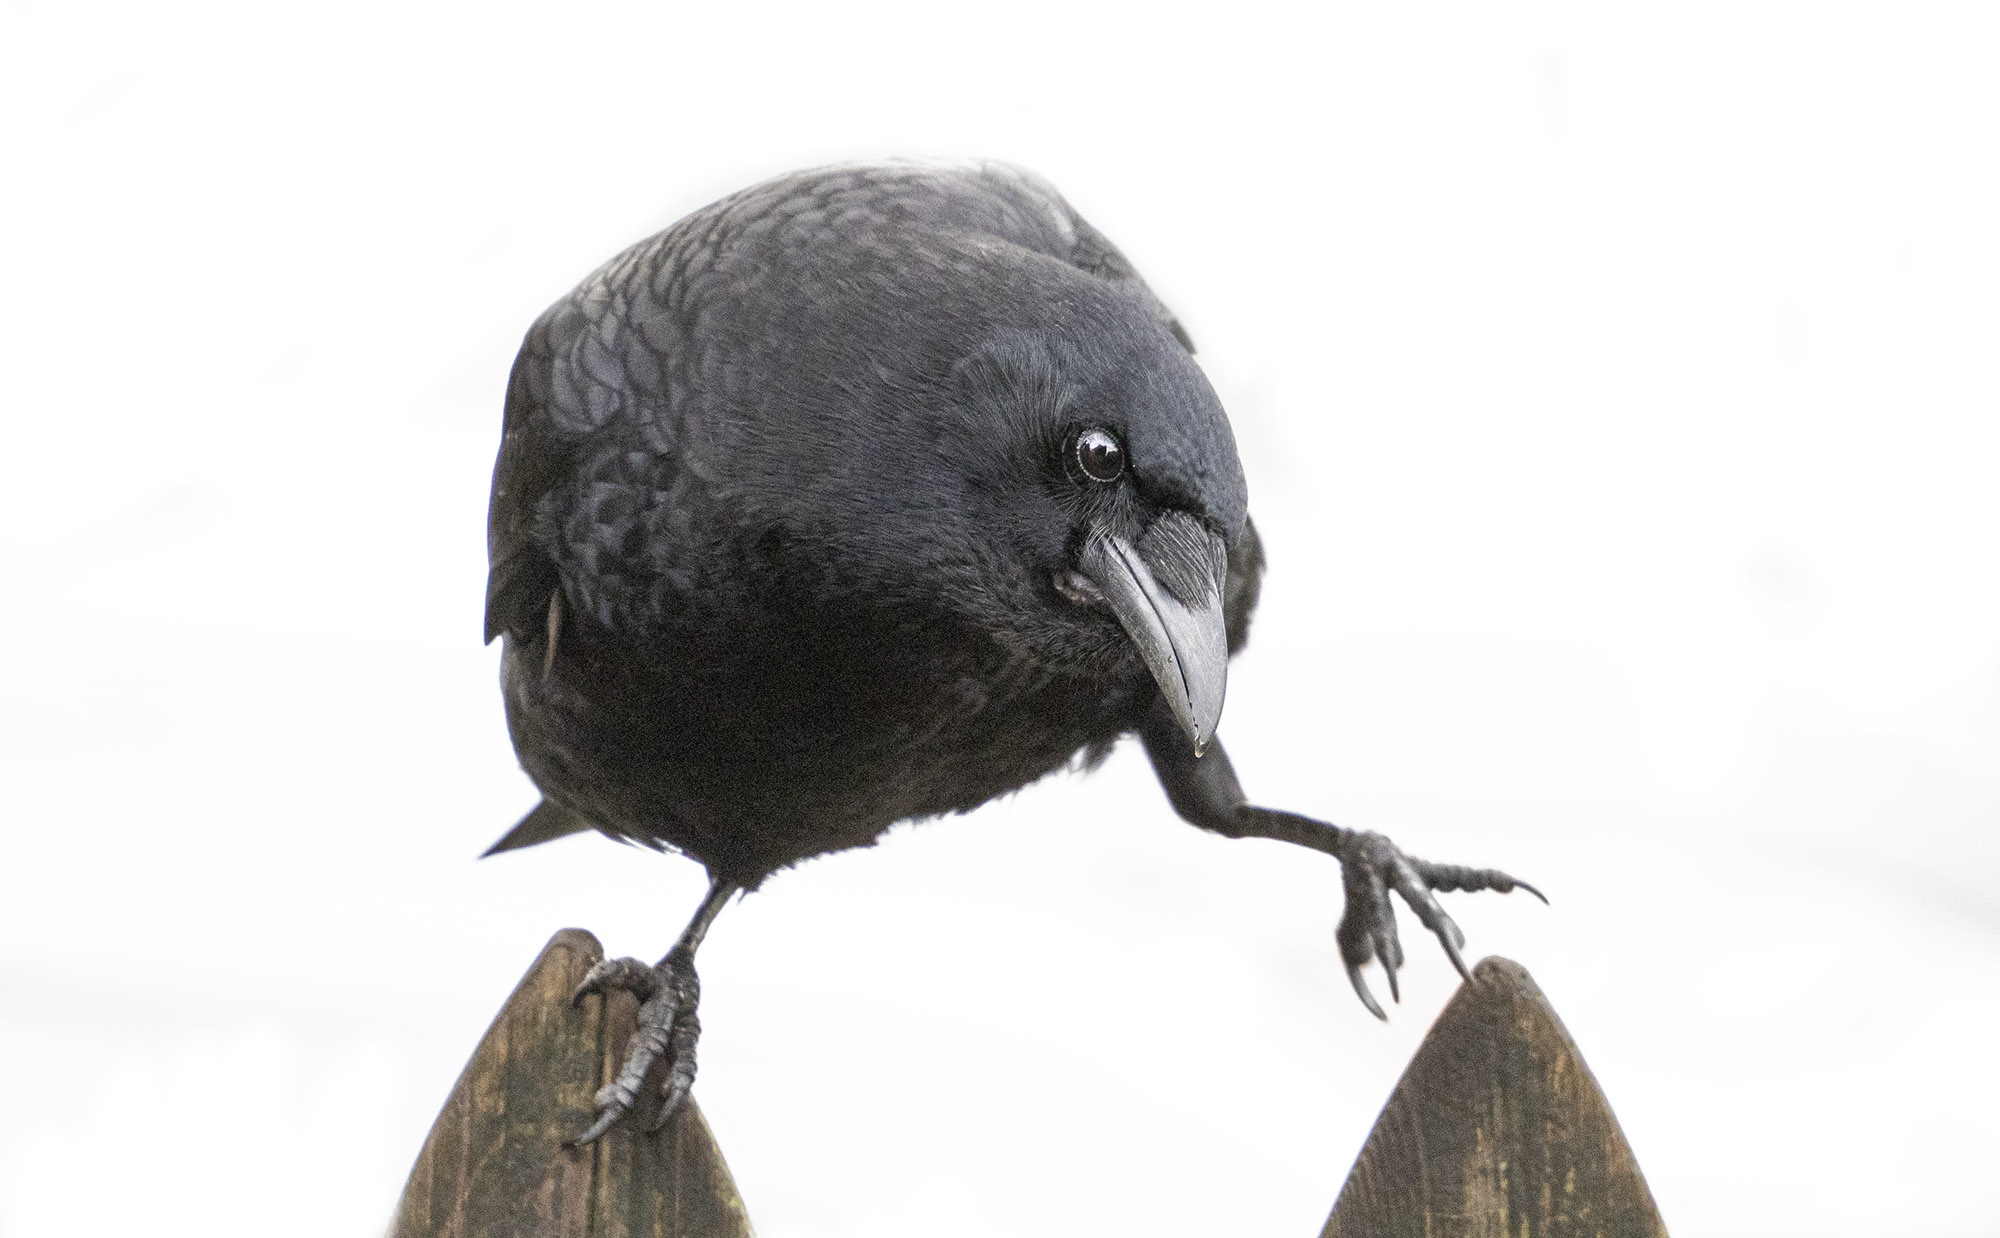 A crow balances between two fence posts while looking sideways at the photographer